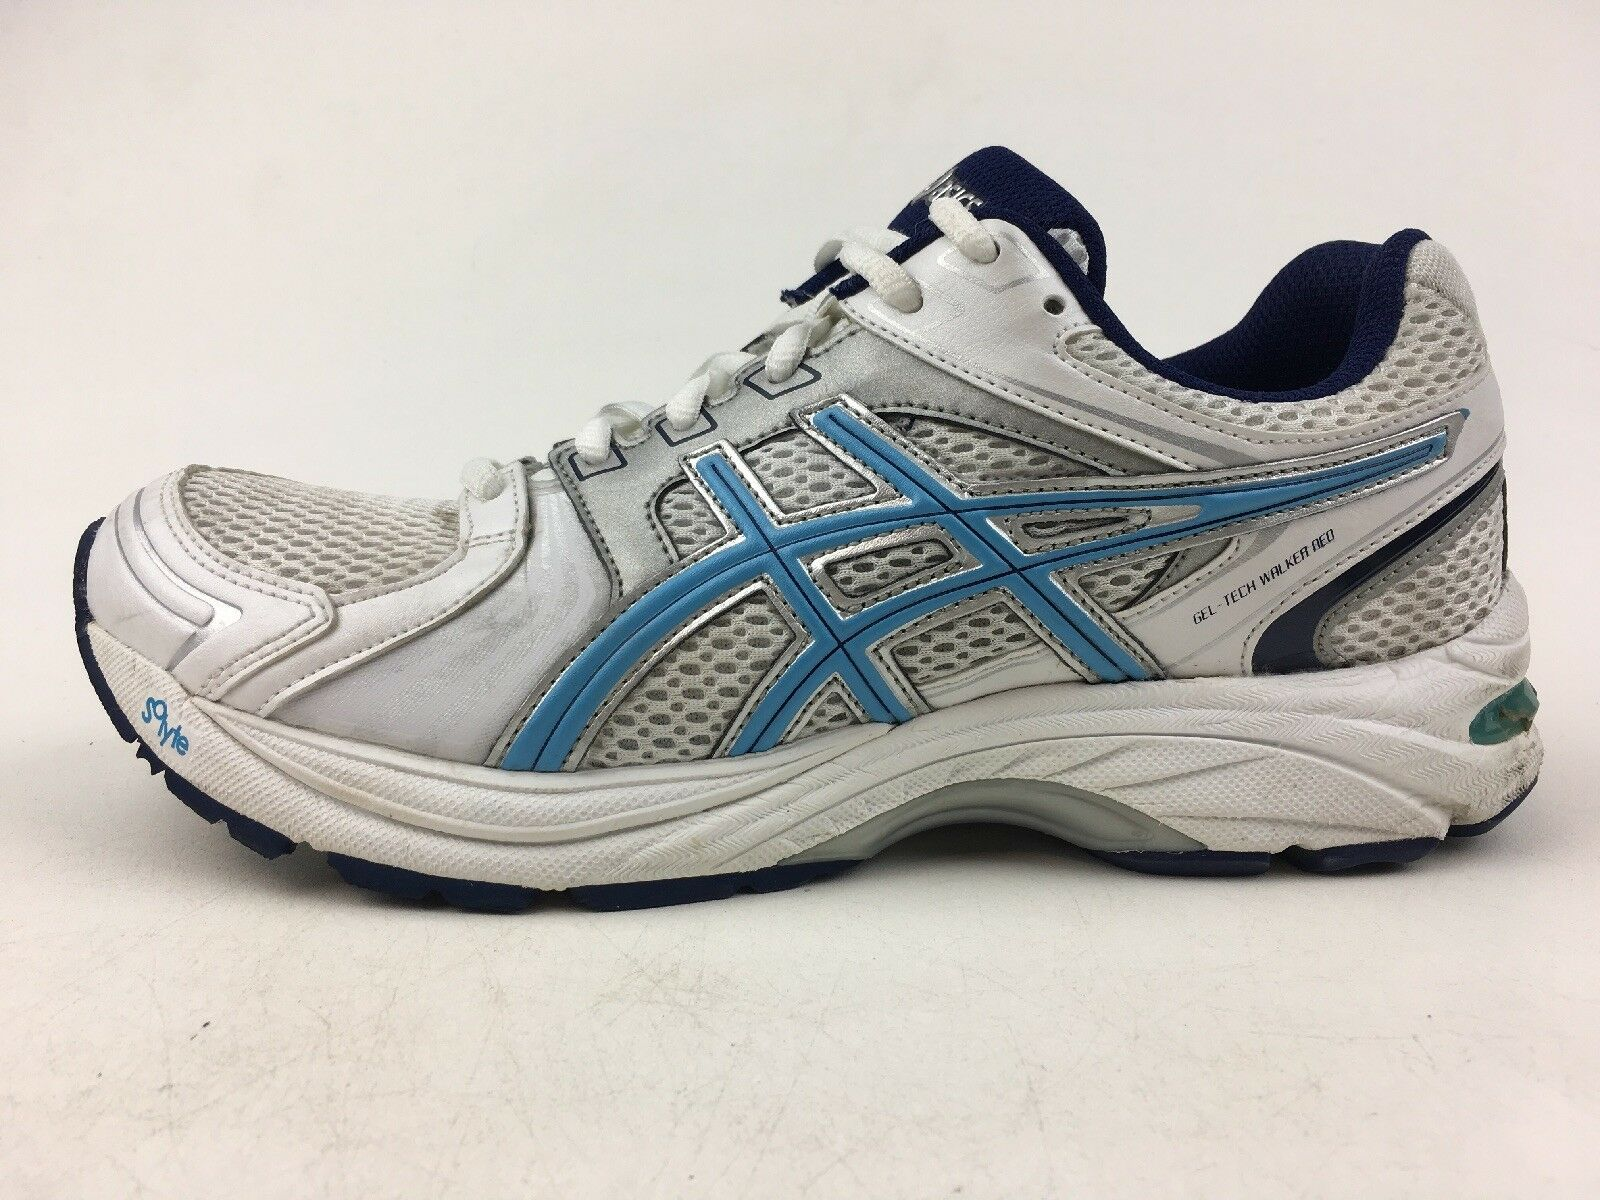 ASICS Women's Q468N Athletic shoes Size 8, White Periwinkle Ink 1343